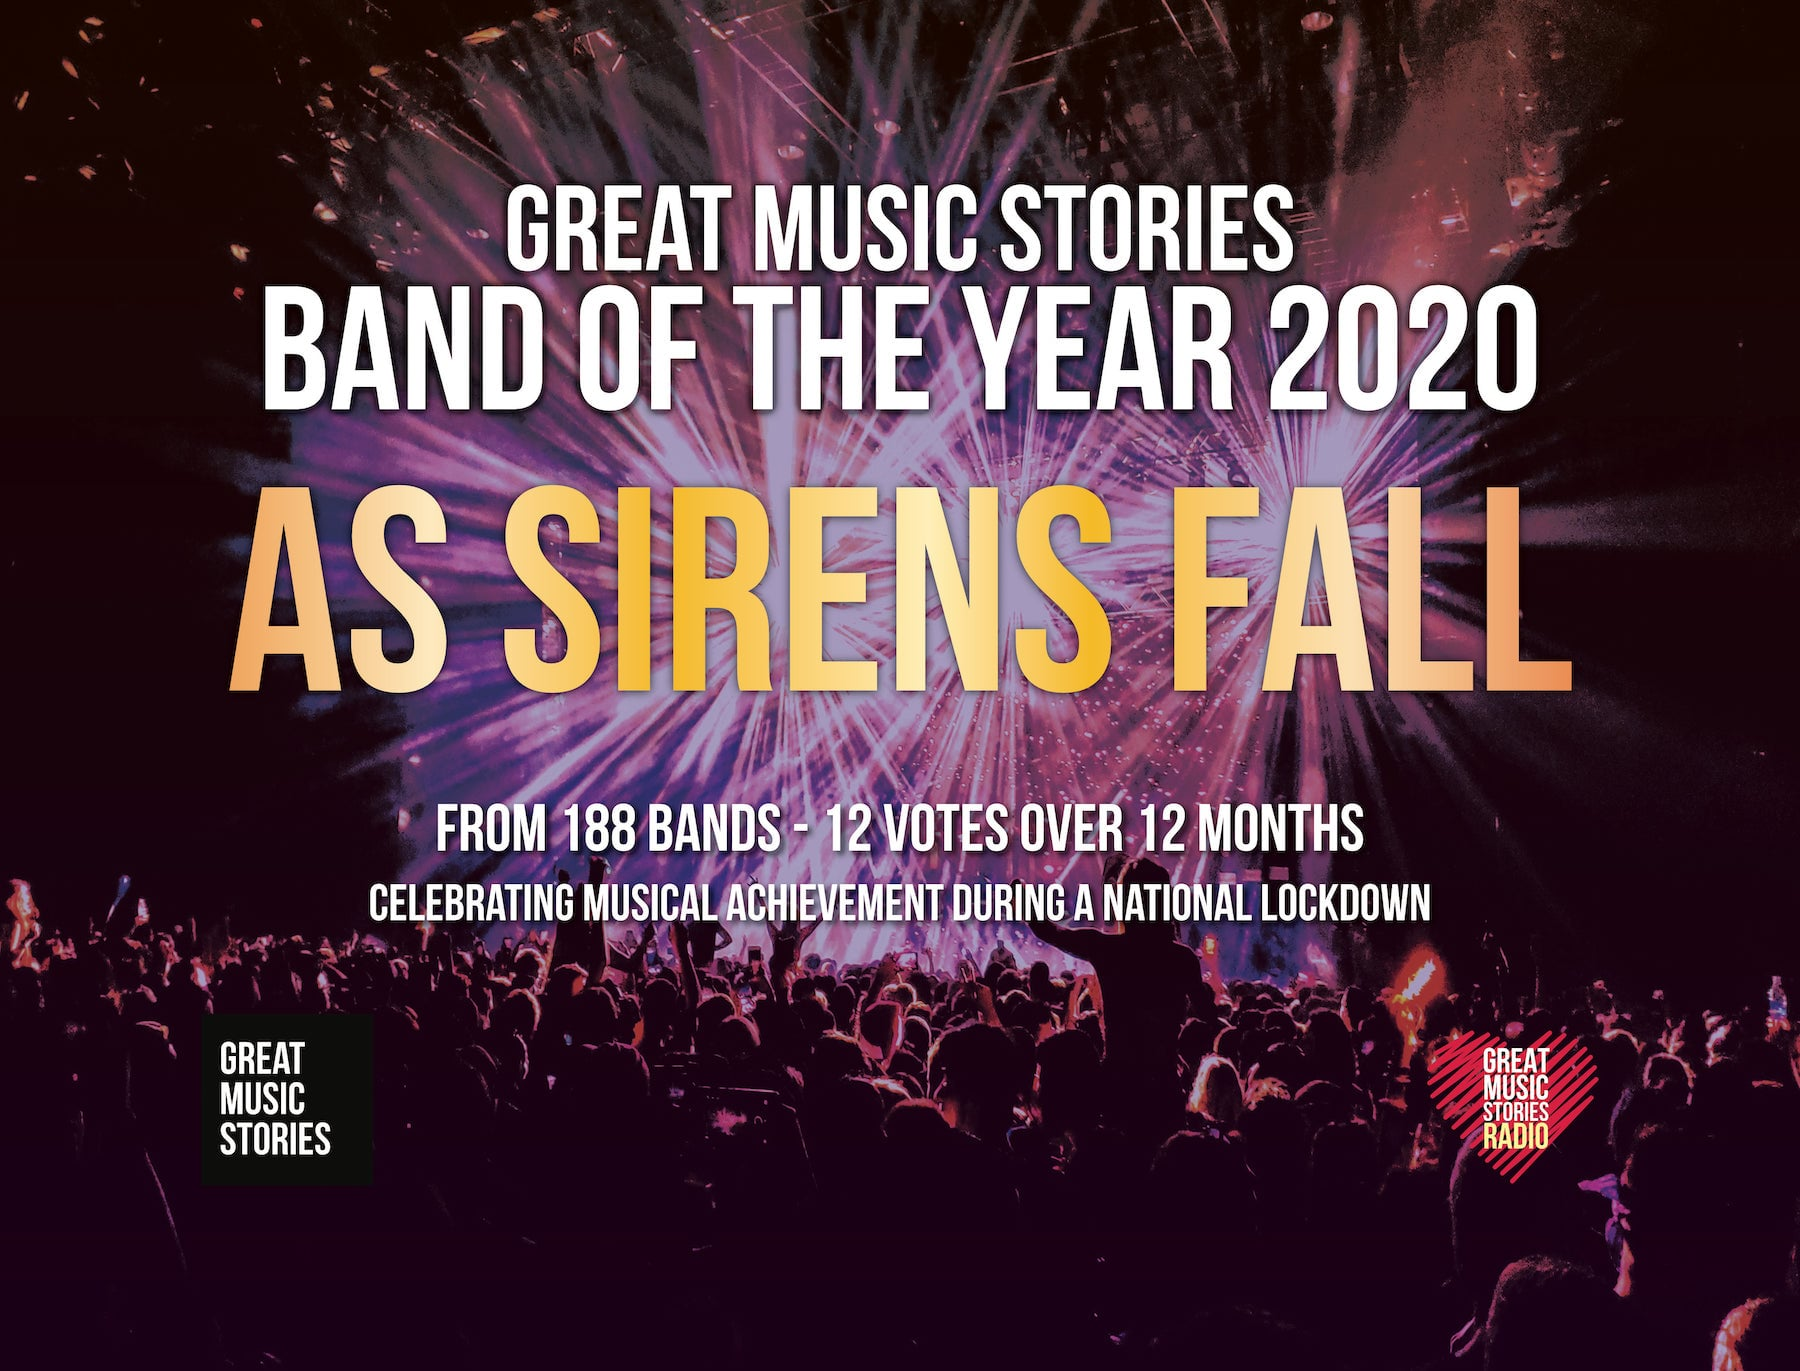 Band of the Year 2020 - As Sirens Fall